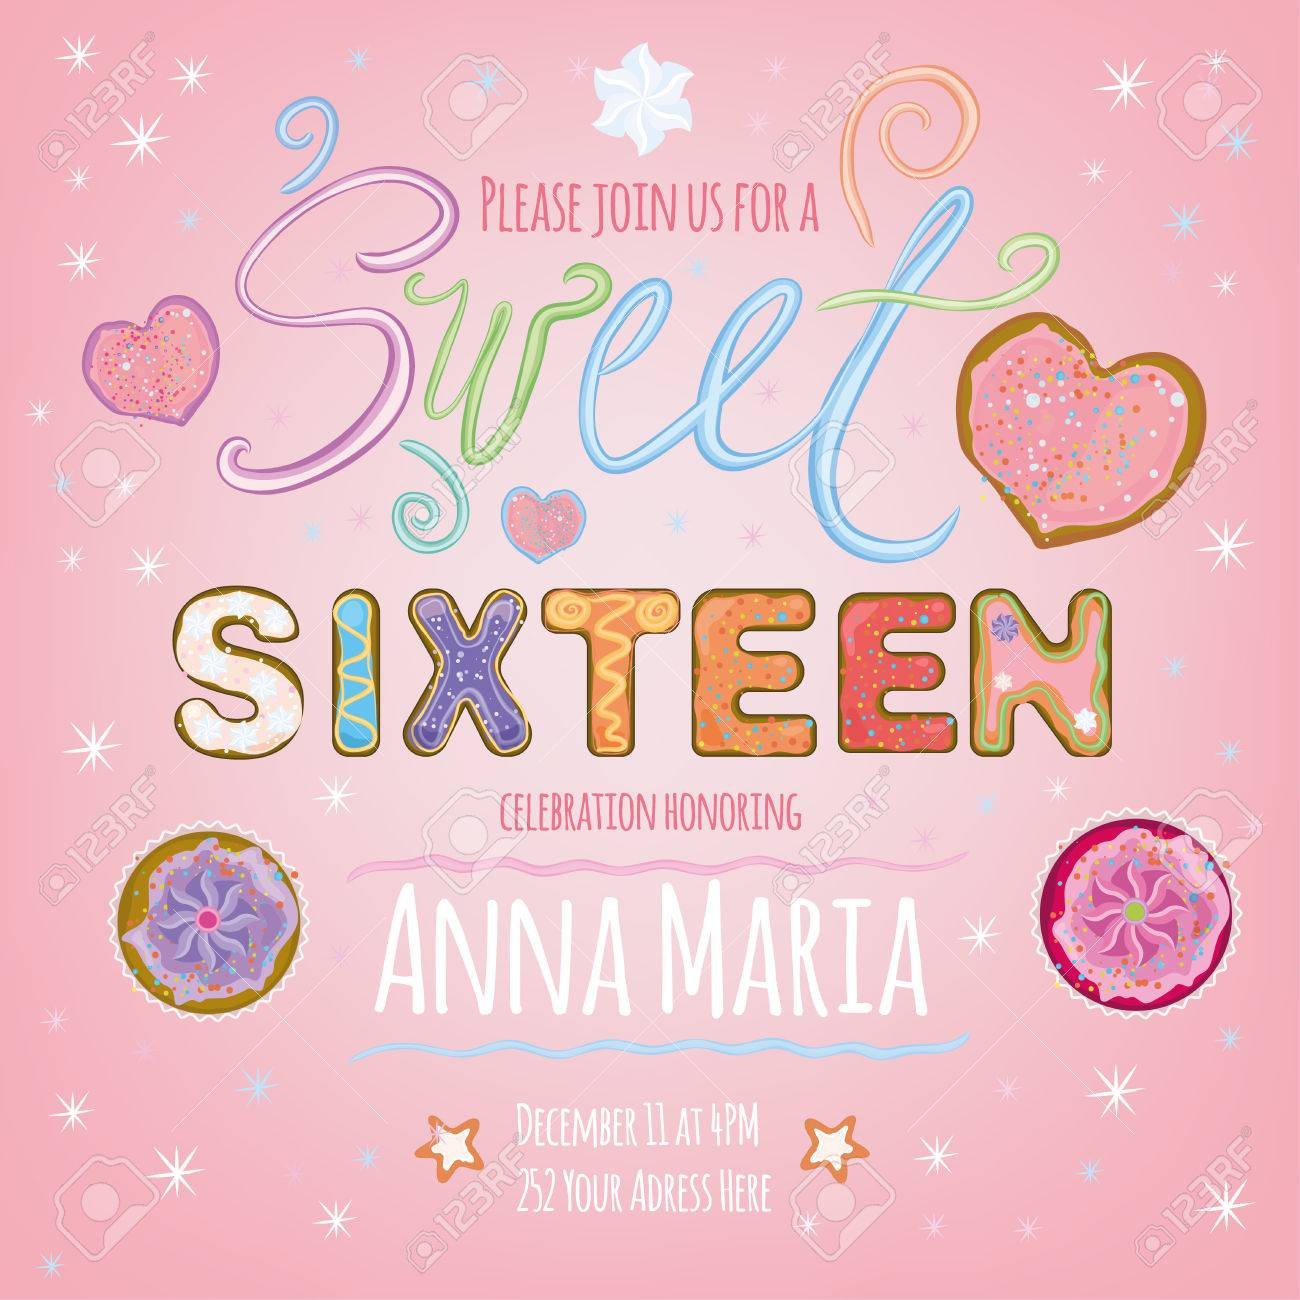 Beautiful Vector Illustration Of A Sweet Sixteen Birthday Party